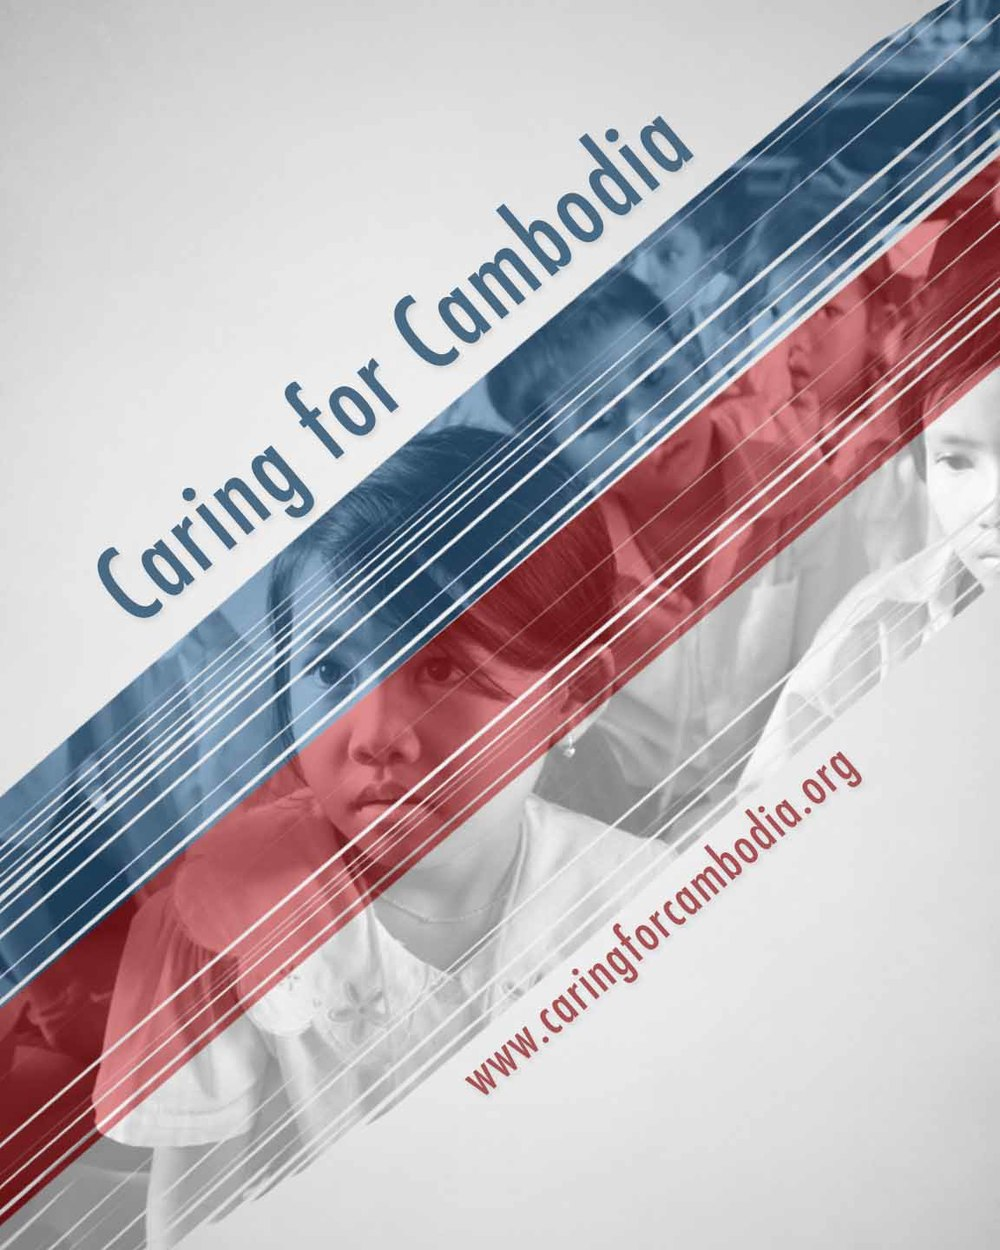 Caring for Cambodia - Movie Poster